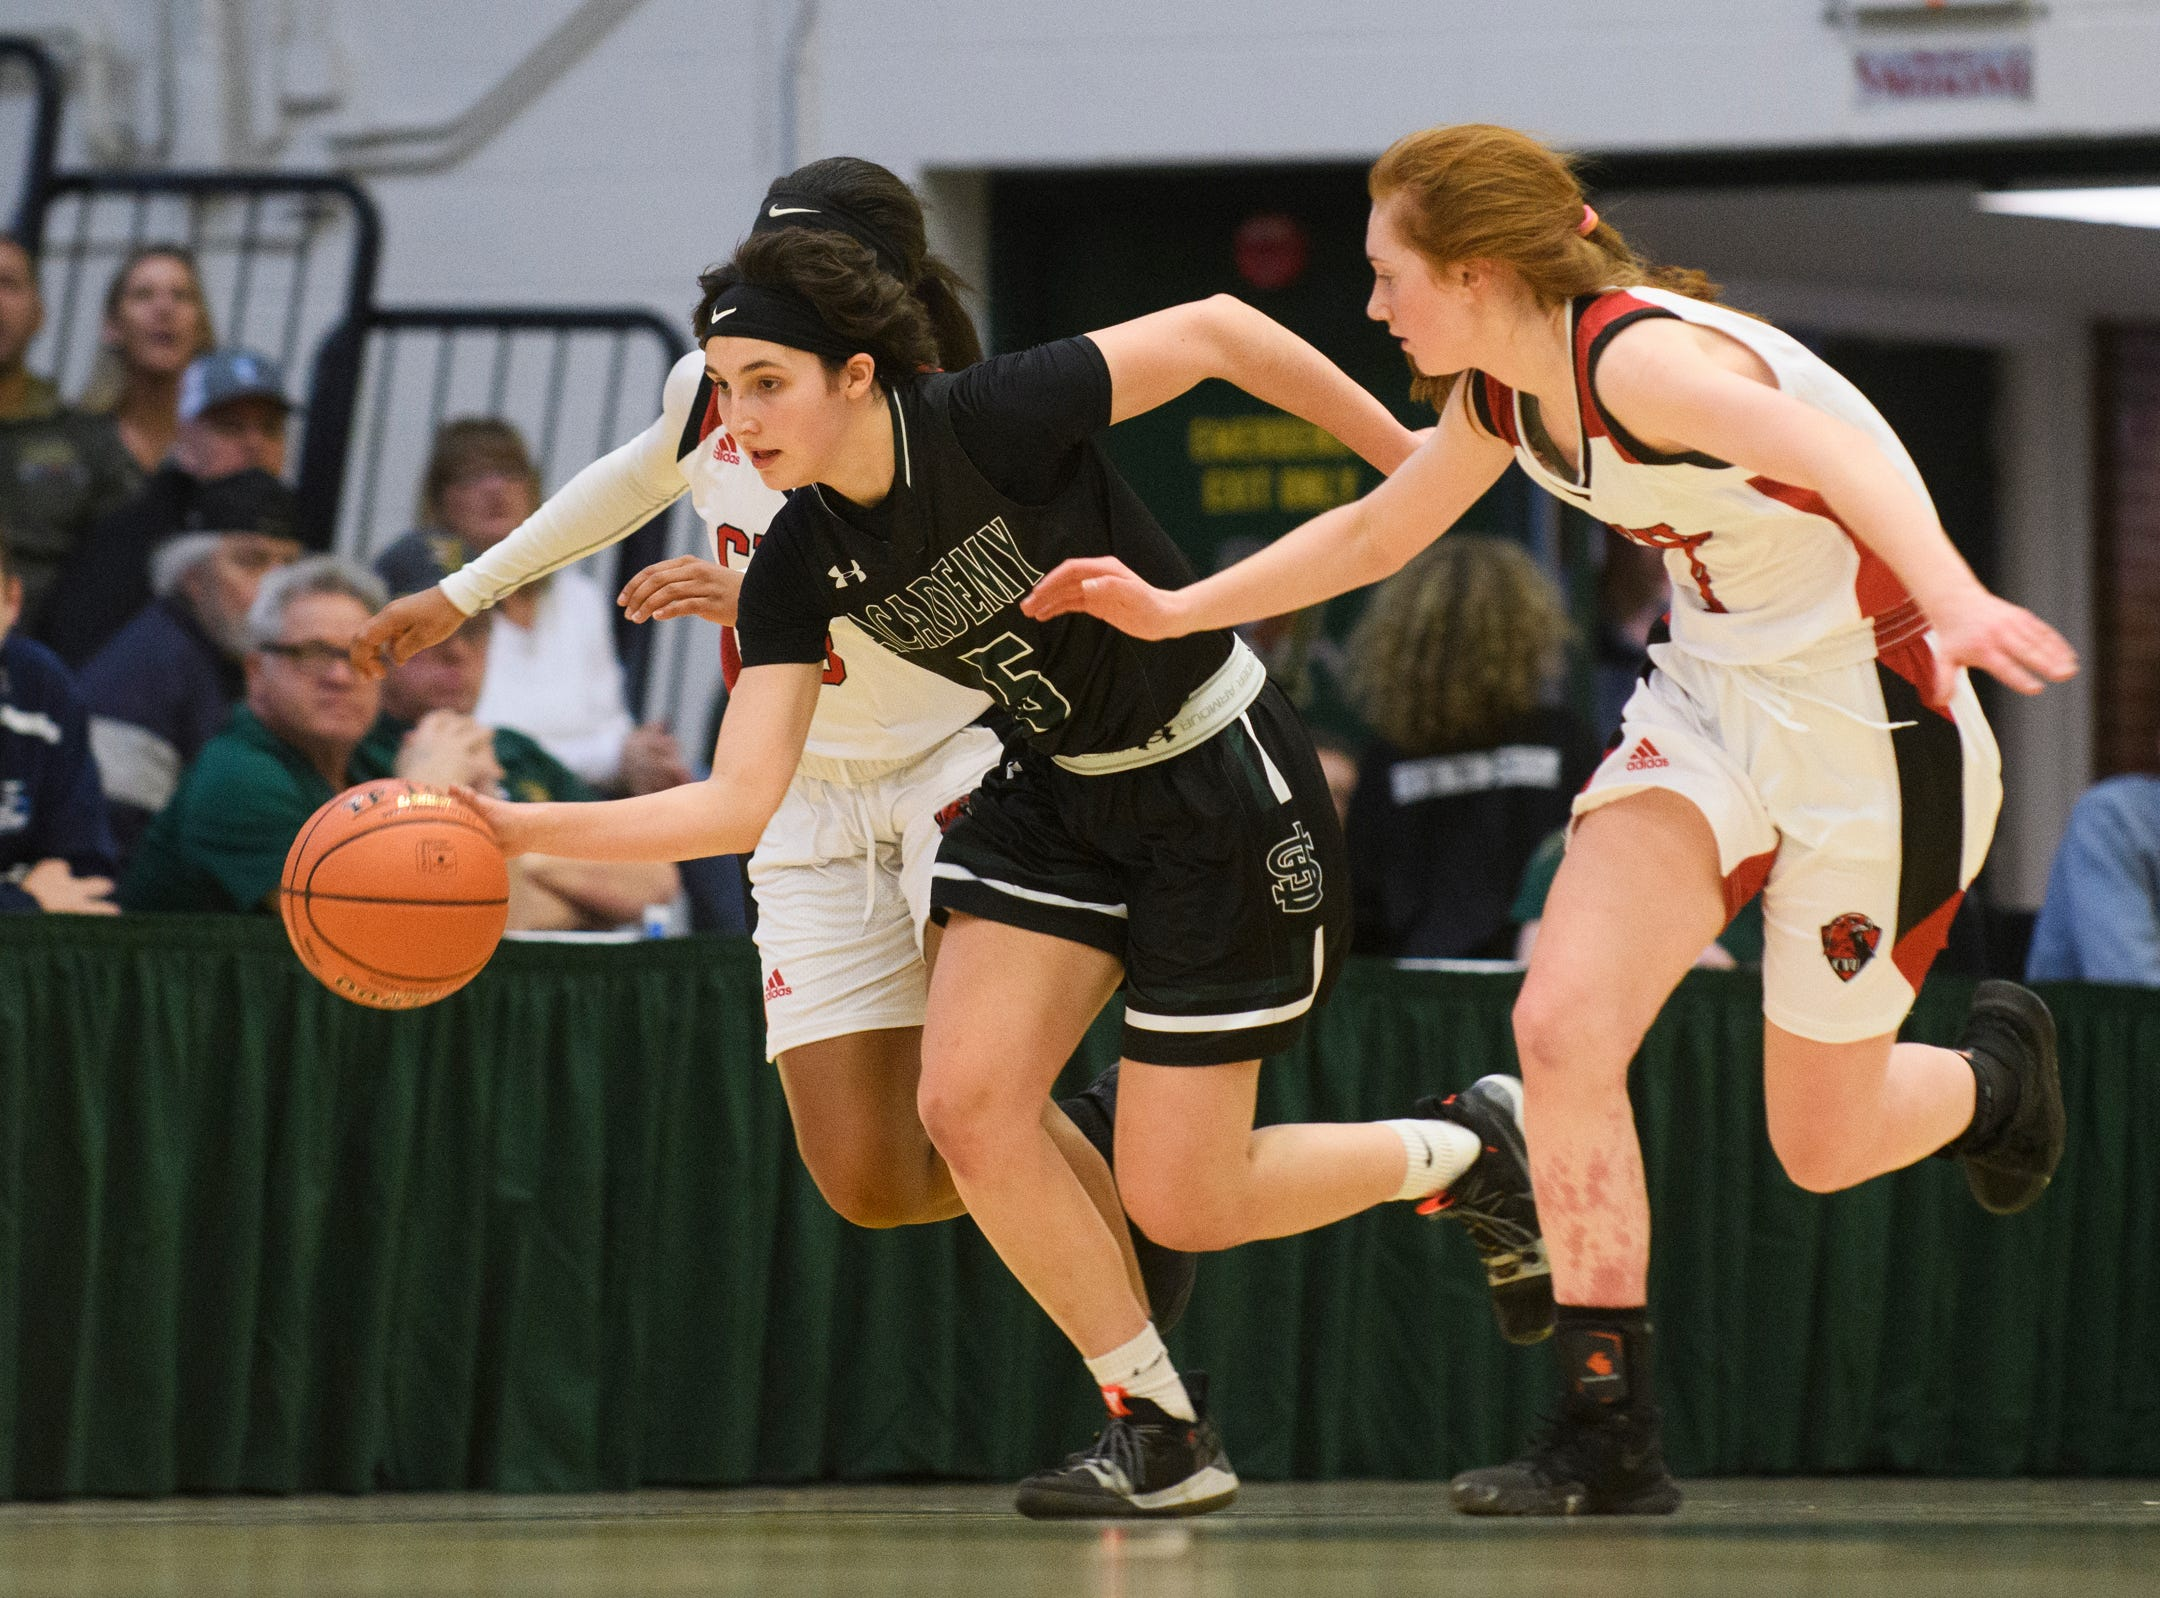 St. Johnsbury's Sadie Stetson (5) dribbles the ball down the court past CVU's Catherine Gilwee (4) and Mekkena Boyd (3) during the division I girls basketball championship basketball game between the St. Johnsbury Hilltoppers and the Champlain Valley Union Redhawks at Patrick Gym on Sunday afternoon March 10, 2019 in Burlington, Vermont.